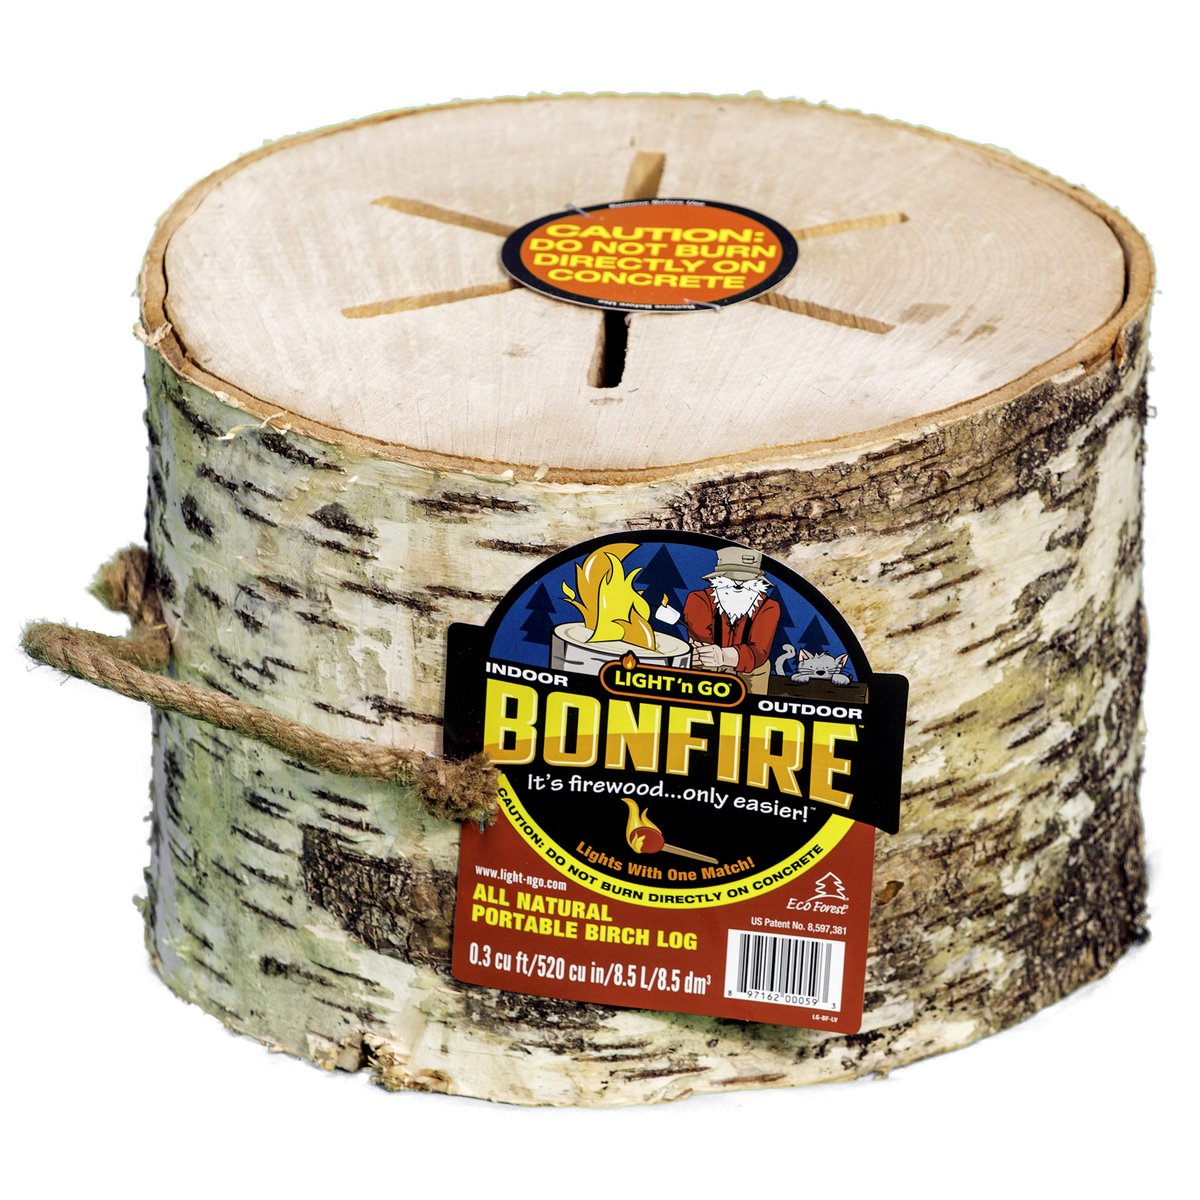 It's time to enter our weekly #giveaway for a #free Light 'n Go #Bonfire! Simply like this post and comment where you'd like to try one! #firepit, #fireplace,#camping, #tailgating, #lake, #beach (U.S. Residents Only please) #outdoors #outdoorliving #outdoorfun #MemorialDayWeekendpic.twitter.com/VVOkyKEz3Q